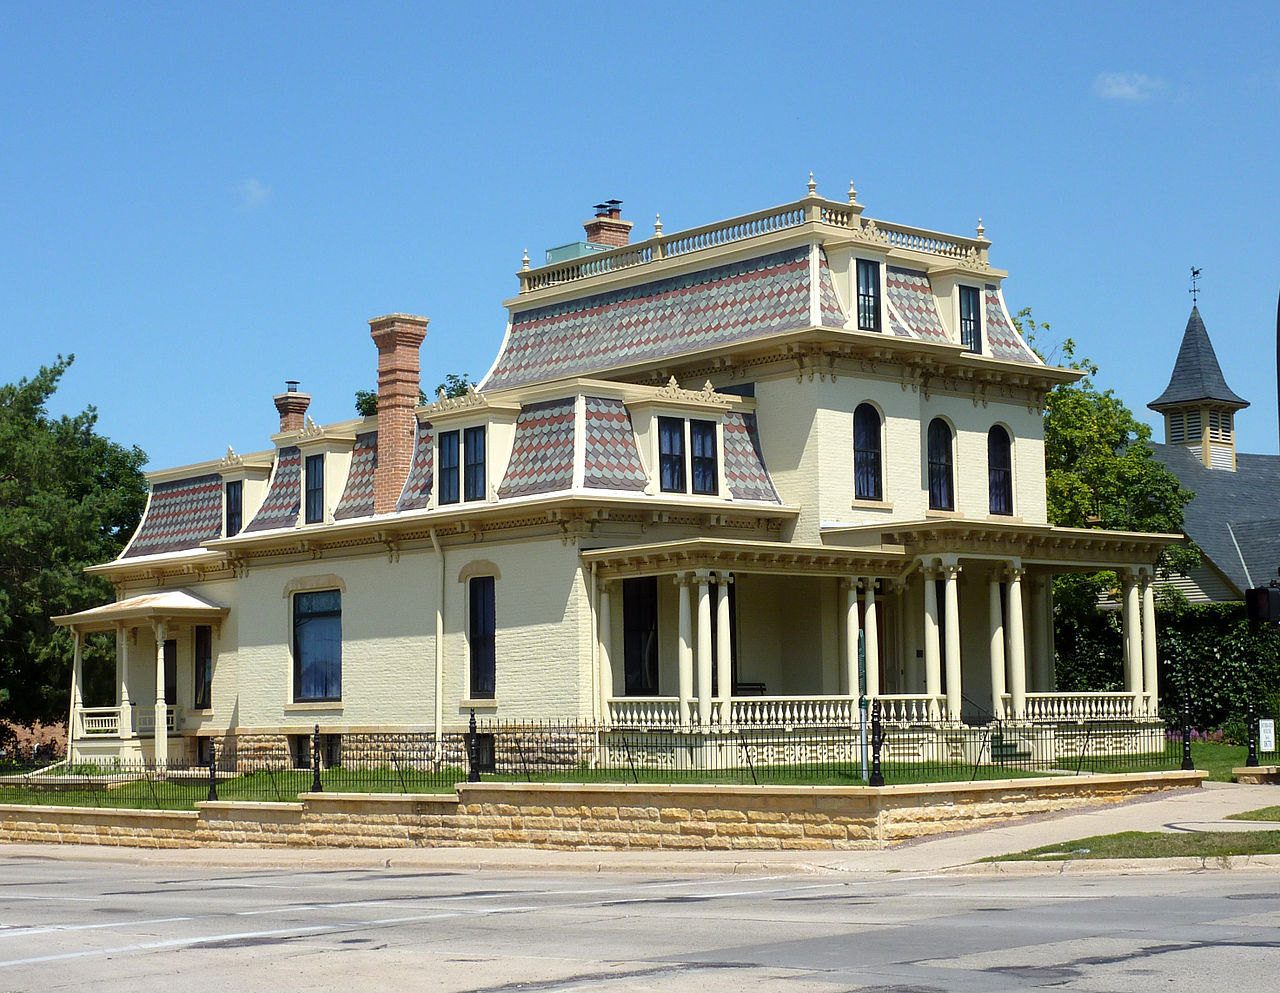 The Hubbard House Museum